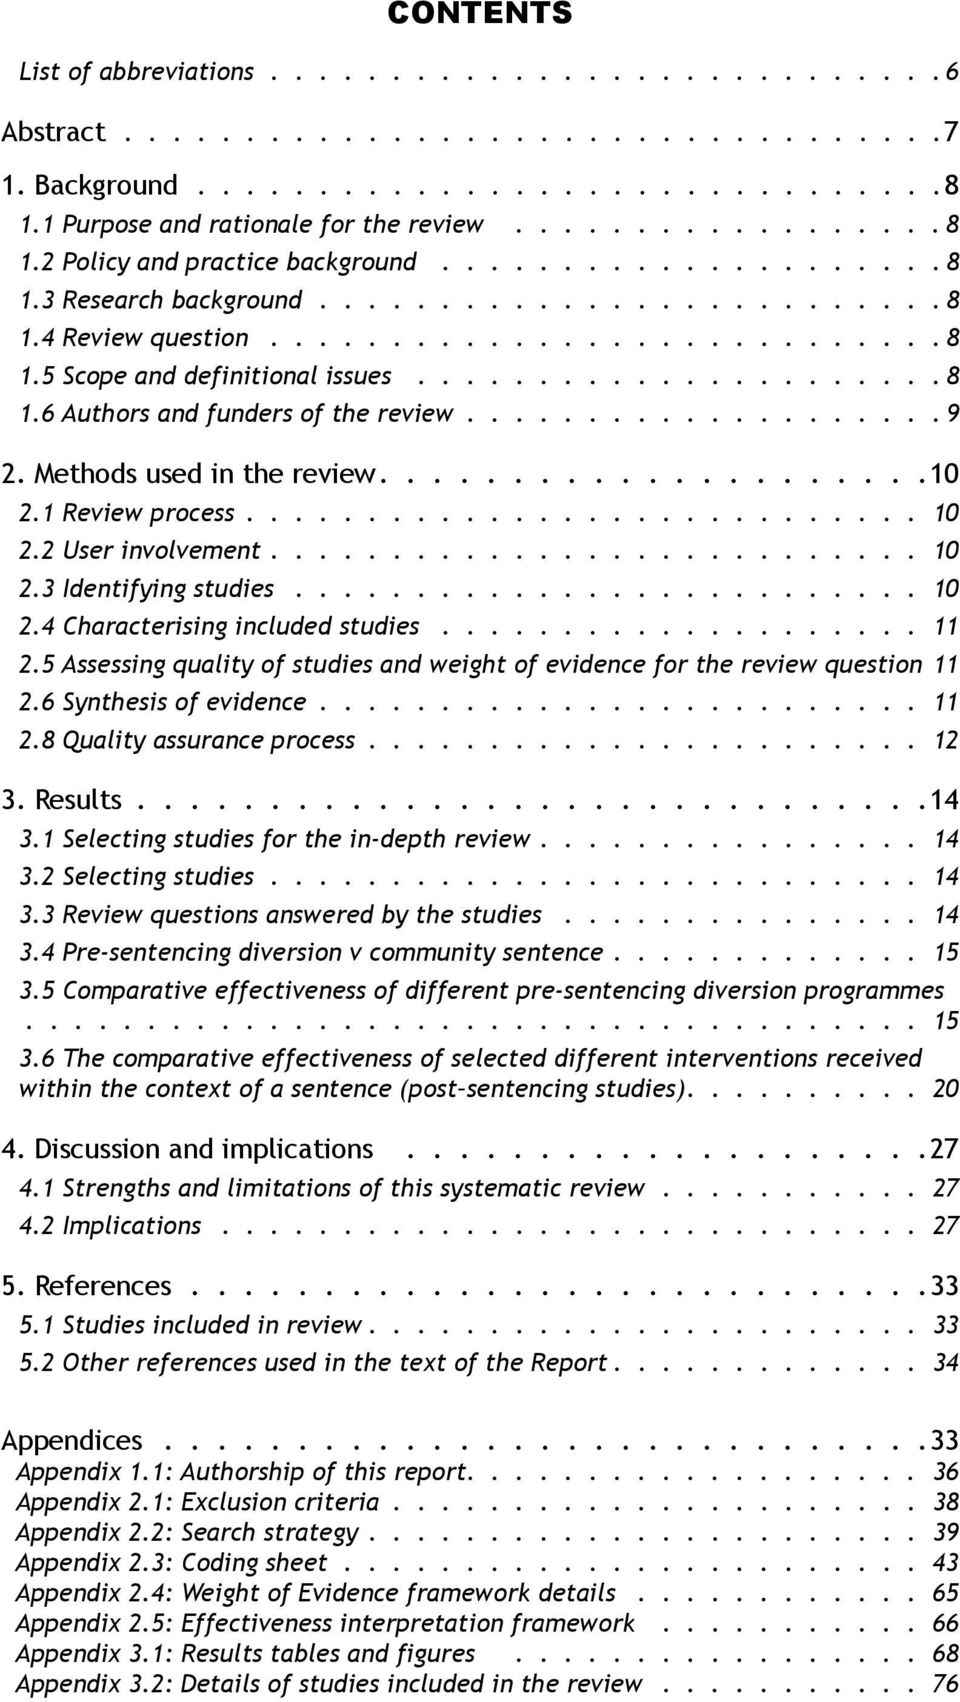 ................... 9 2. Methods used in the review.....................10 2.1 Review process............................ 10 2.2 User involvement........................... 10 2.3 Identifying studies.